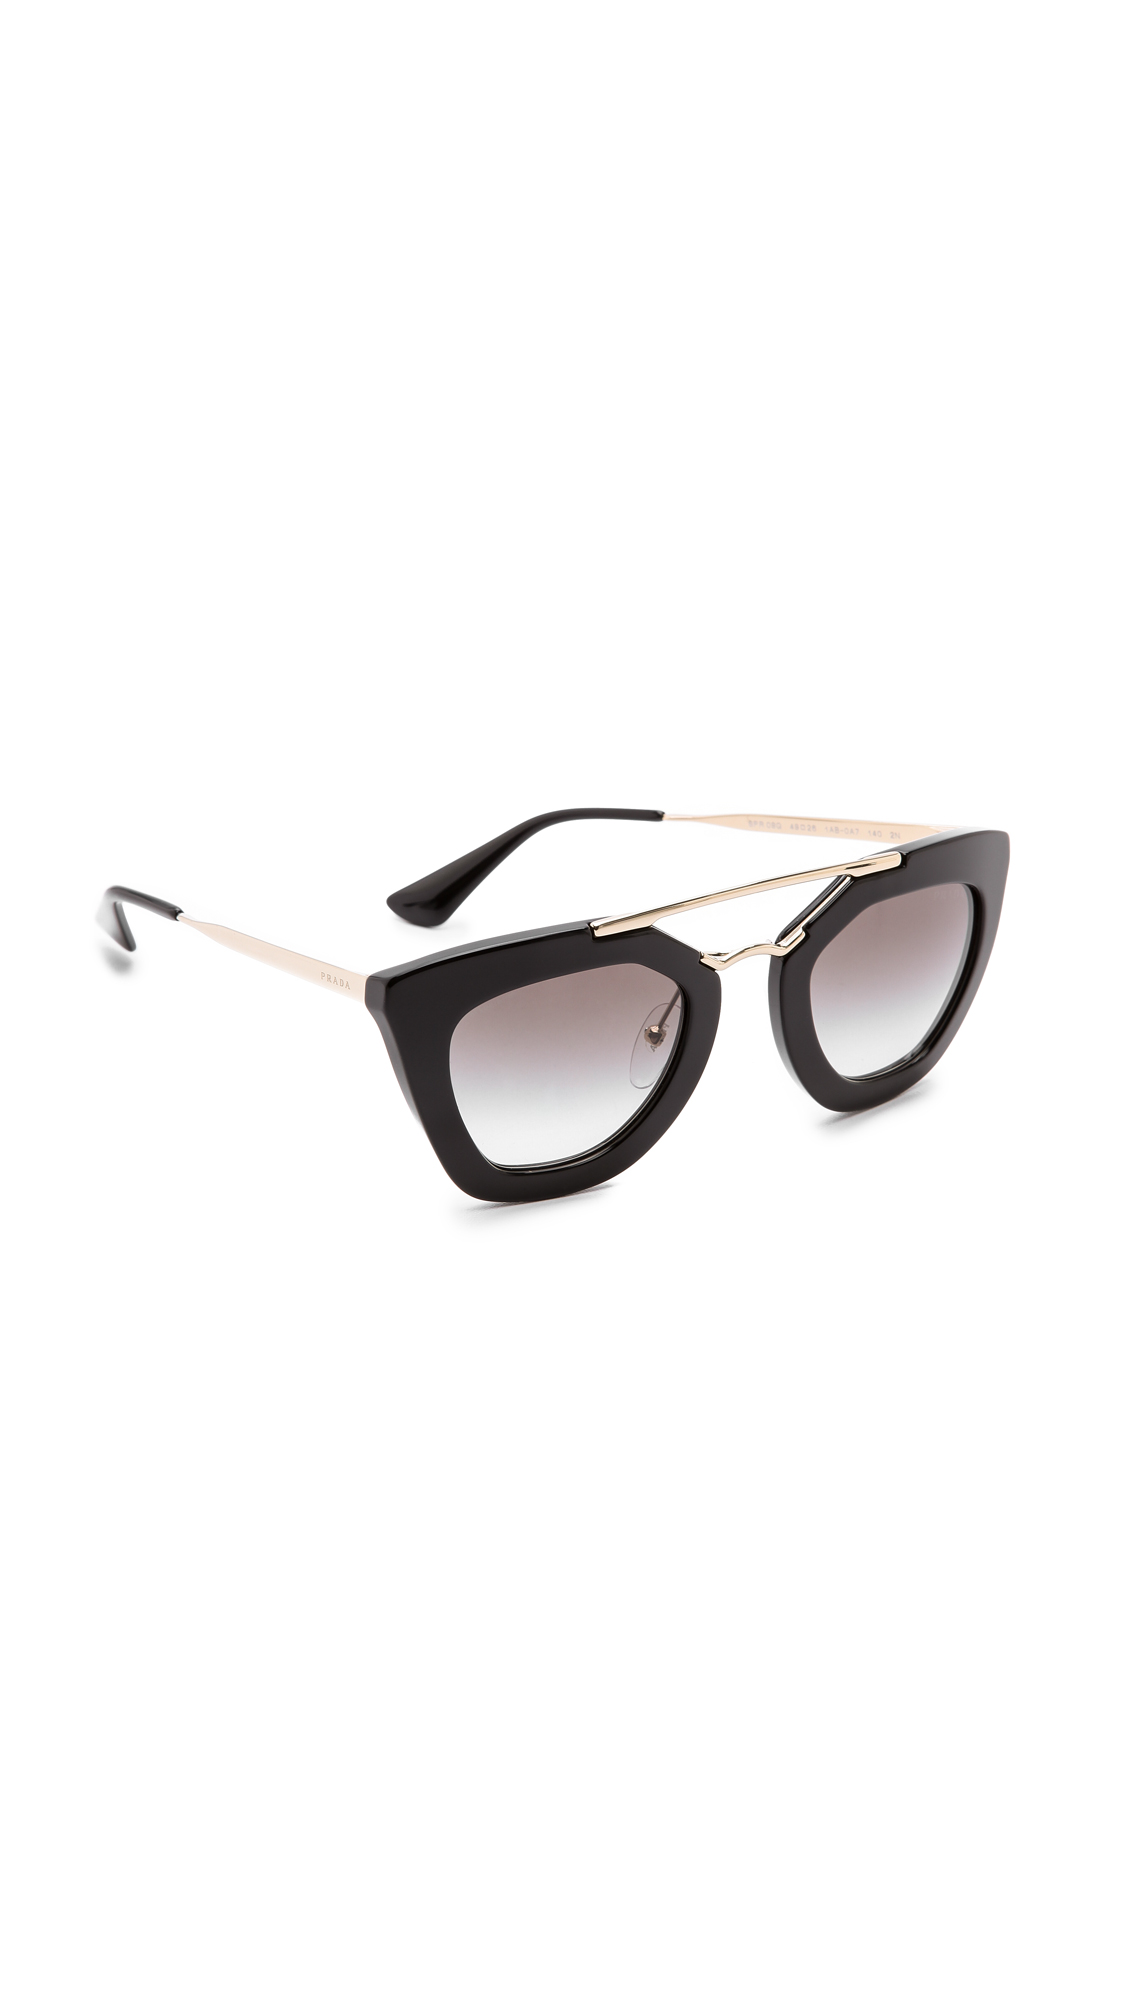 Prada Thick Frame Sunglasses - Black/Black at Shopbop